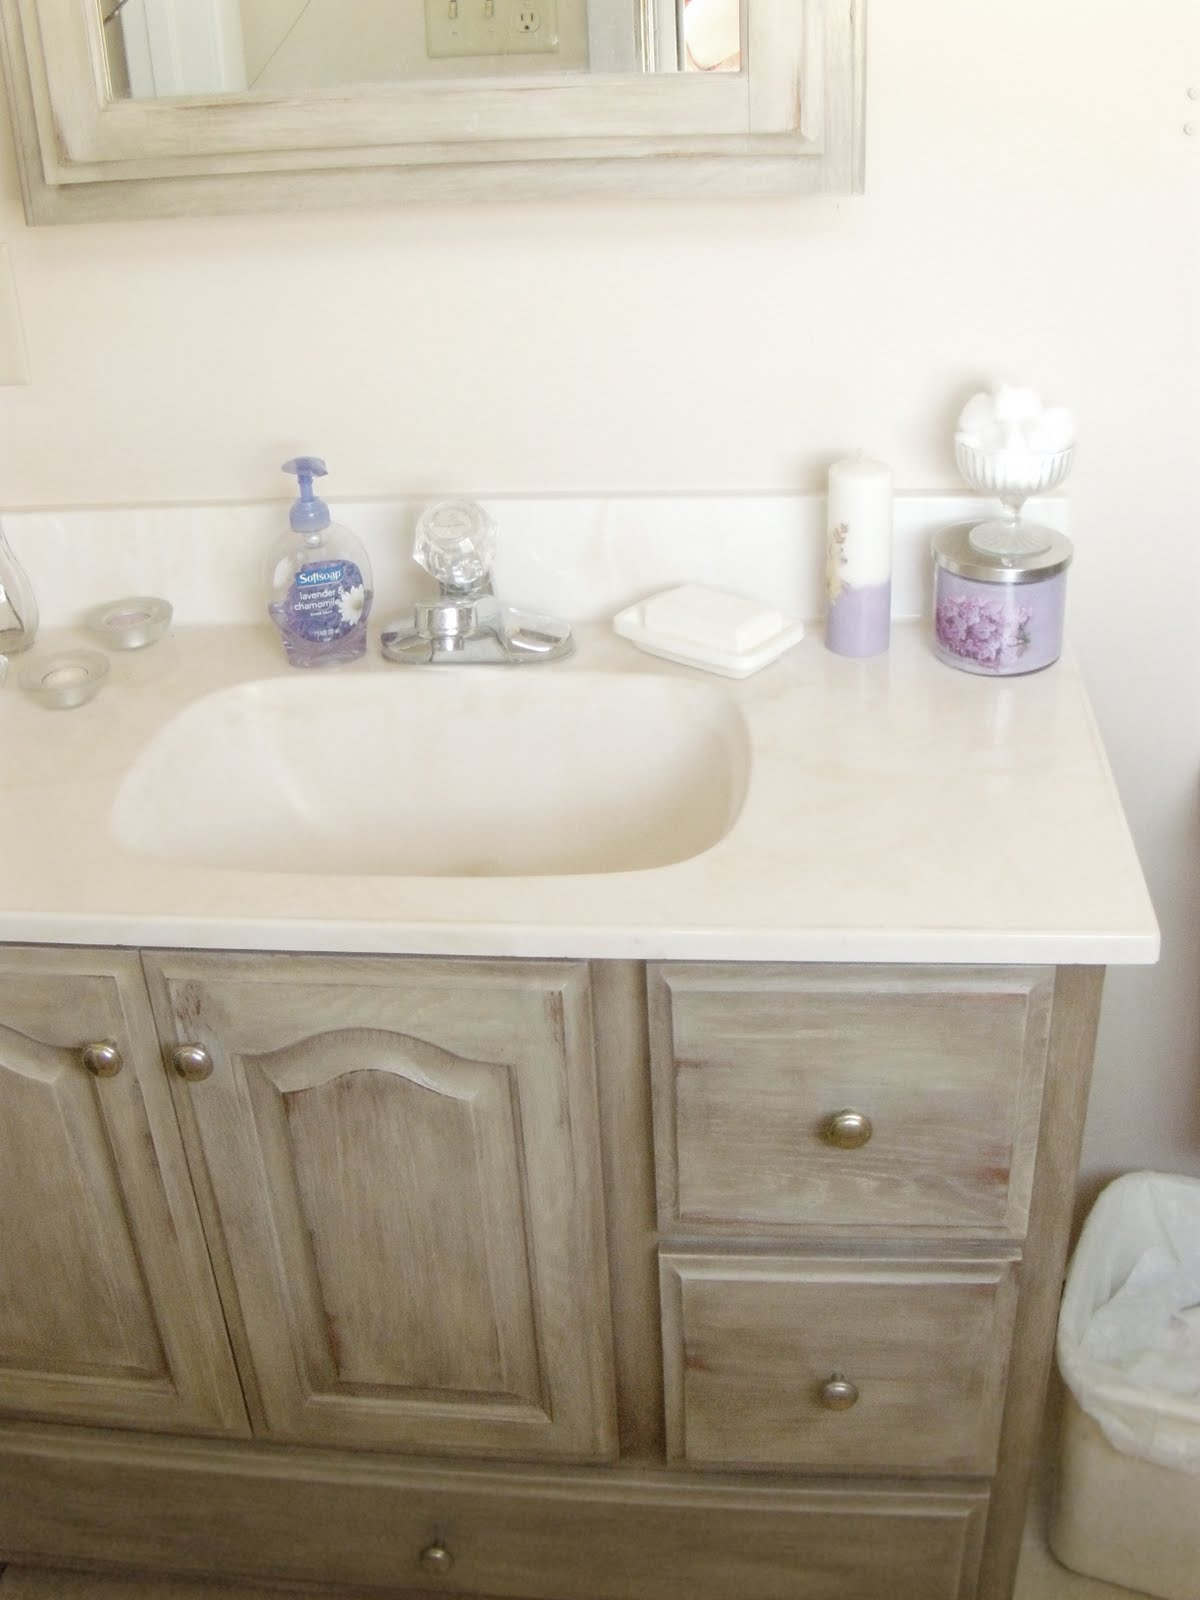 Down on Sanford: Bathroom Vanity Redo